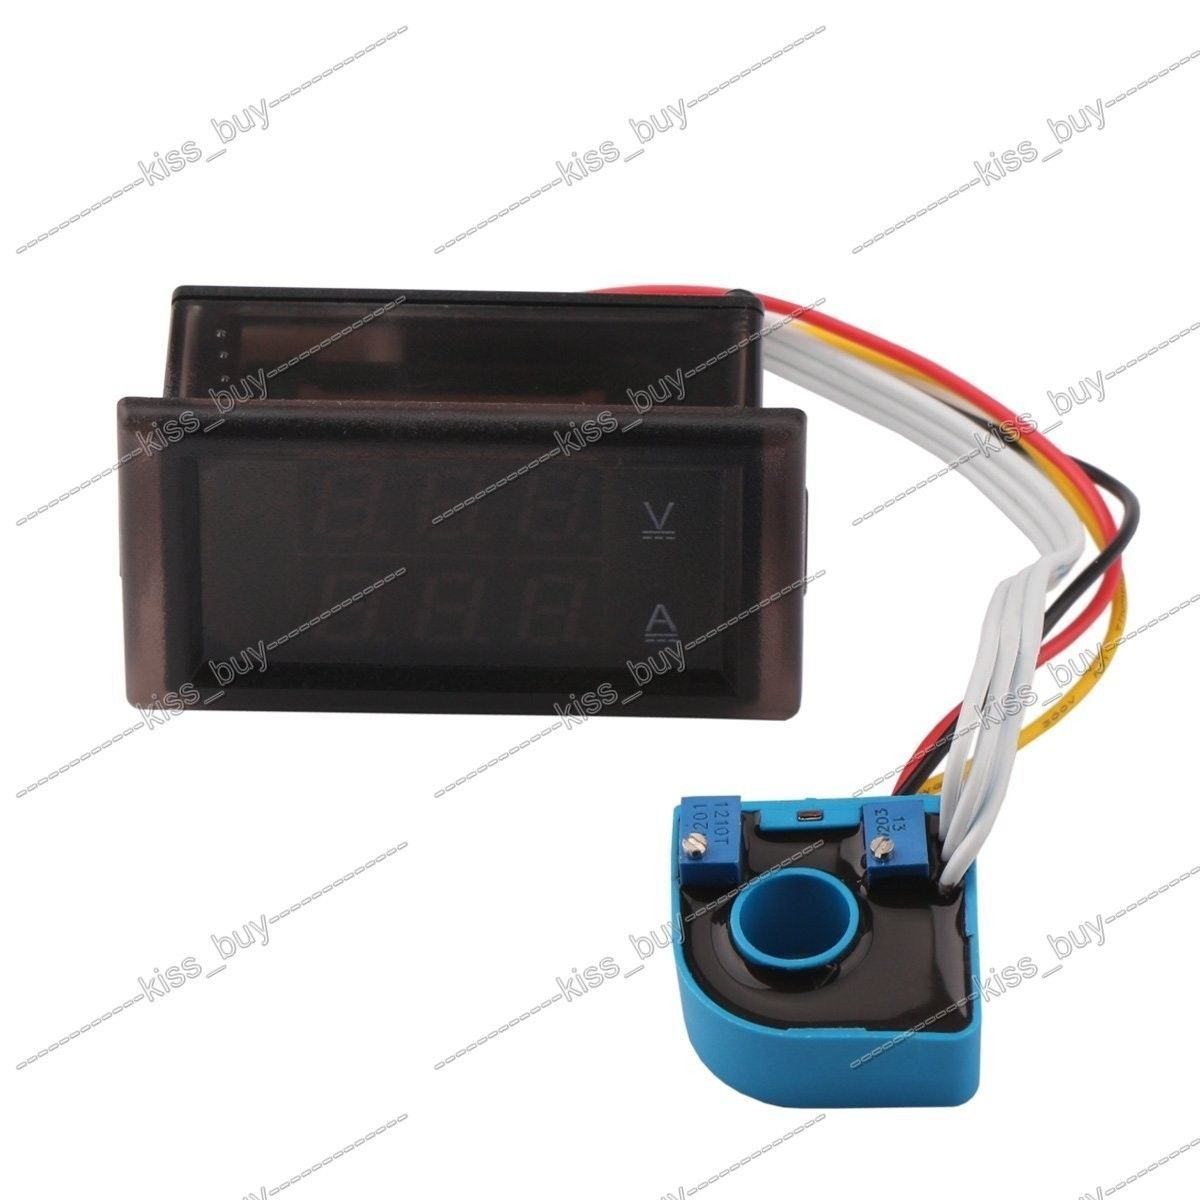 hight resolution of dc 0 600v 100a volt amp meter dual display voltage current 12v 24v car voltmeter ammeter charge discharge solar battery monitor in integrated circuits from